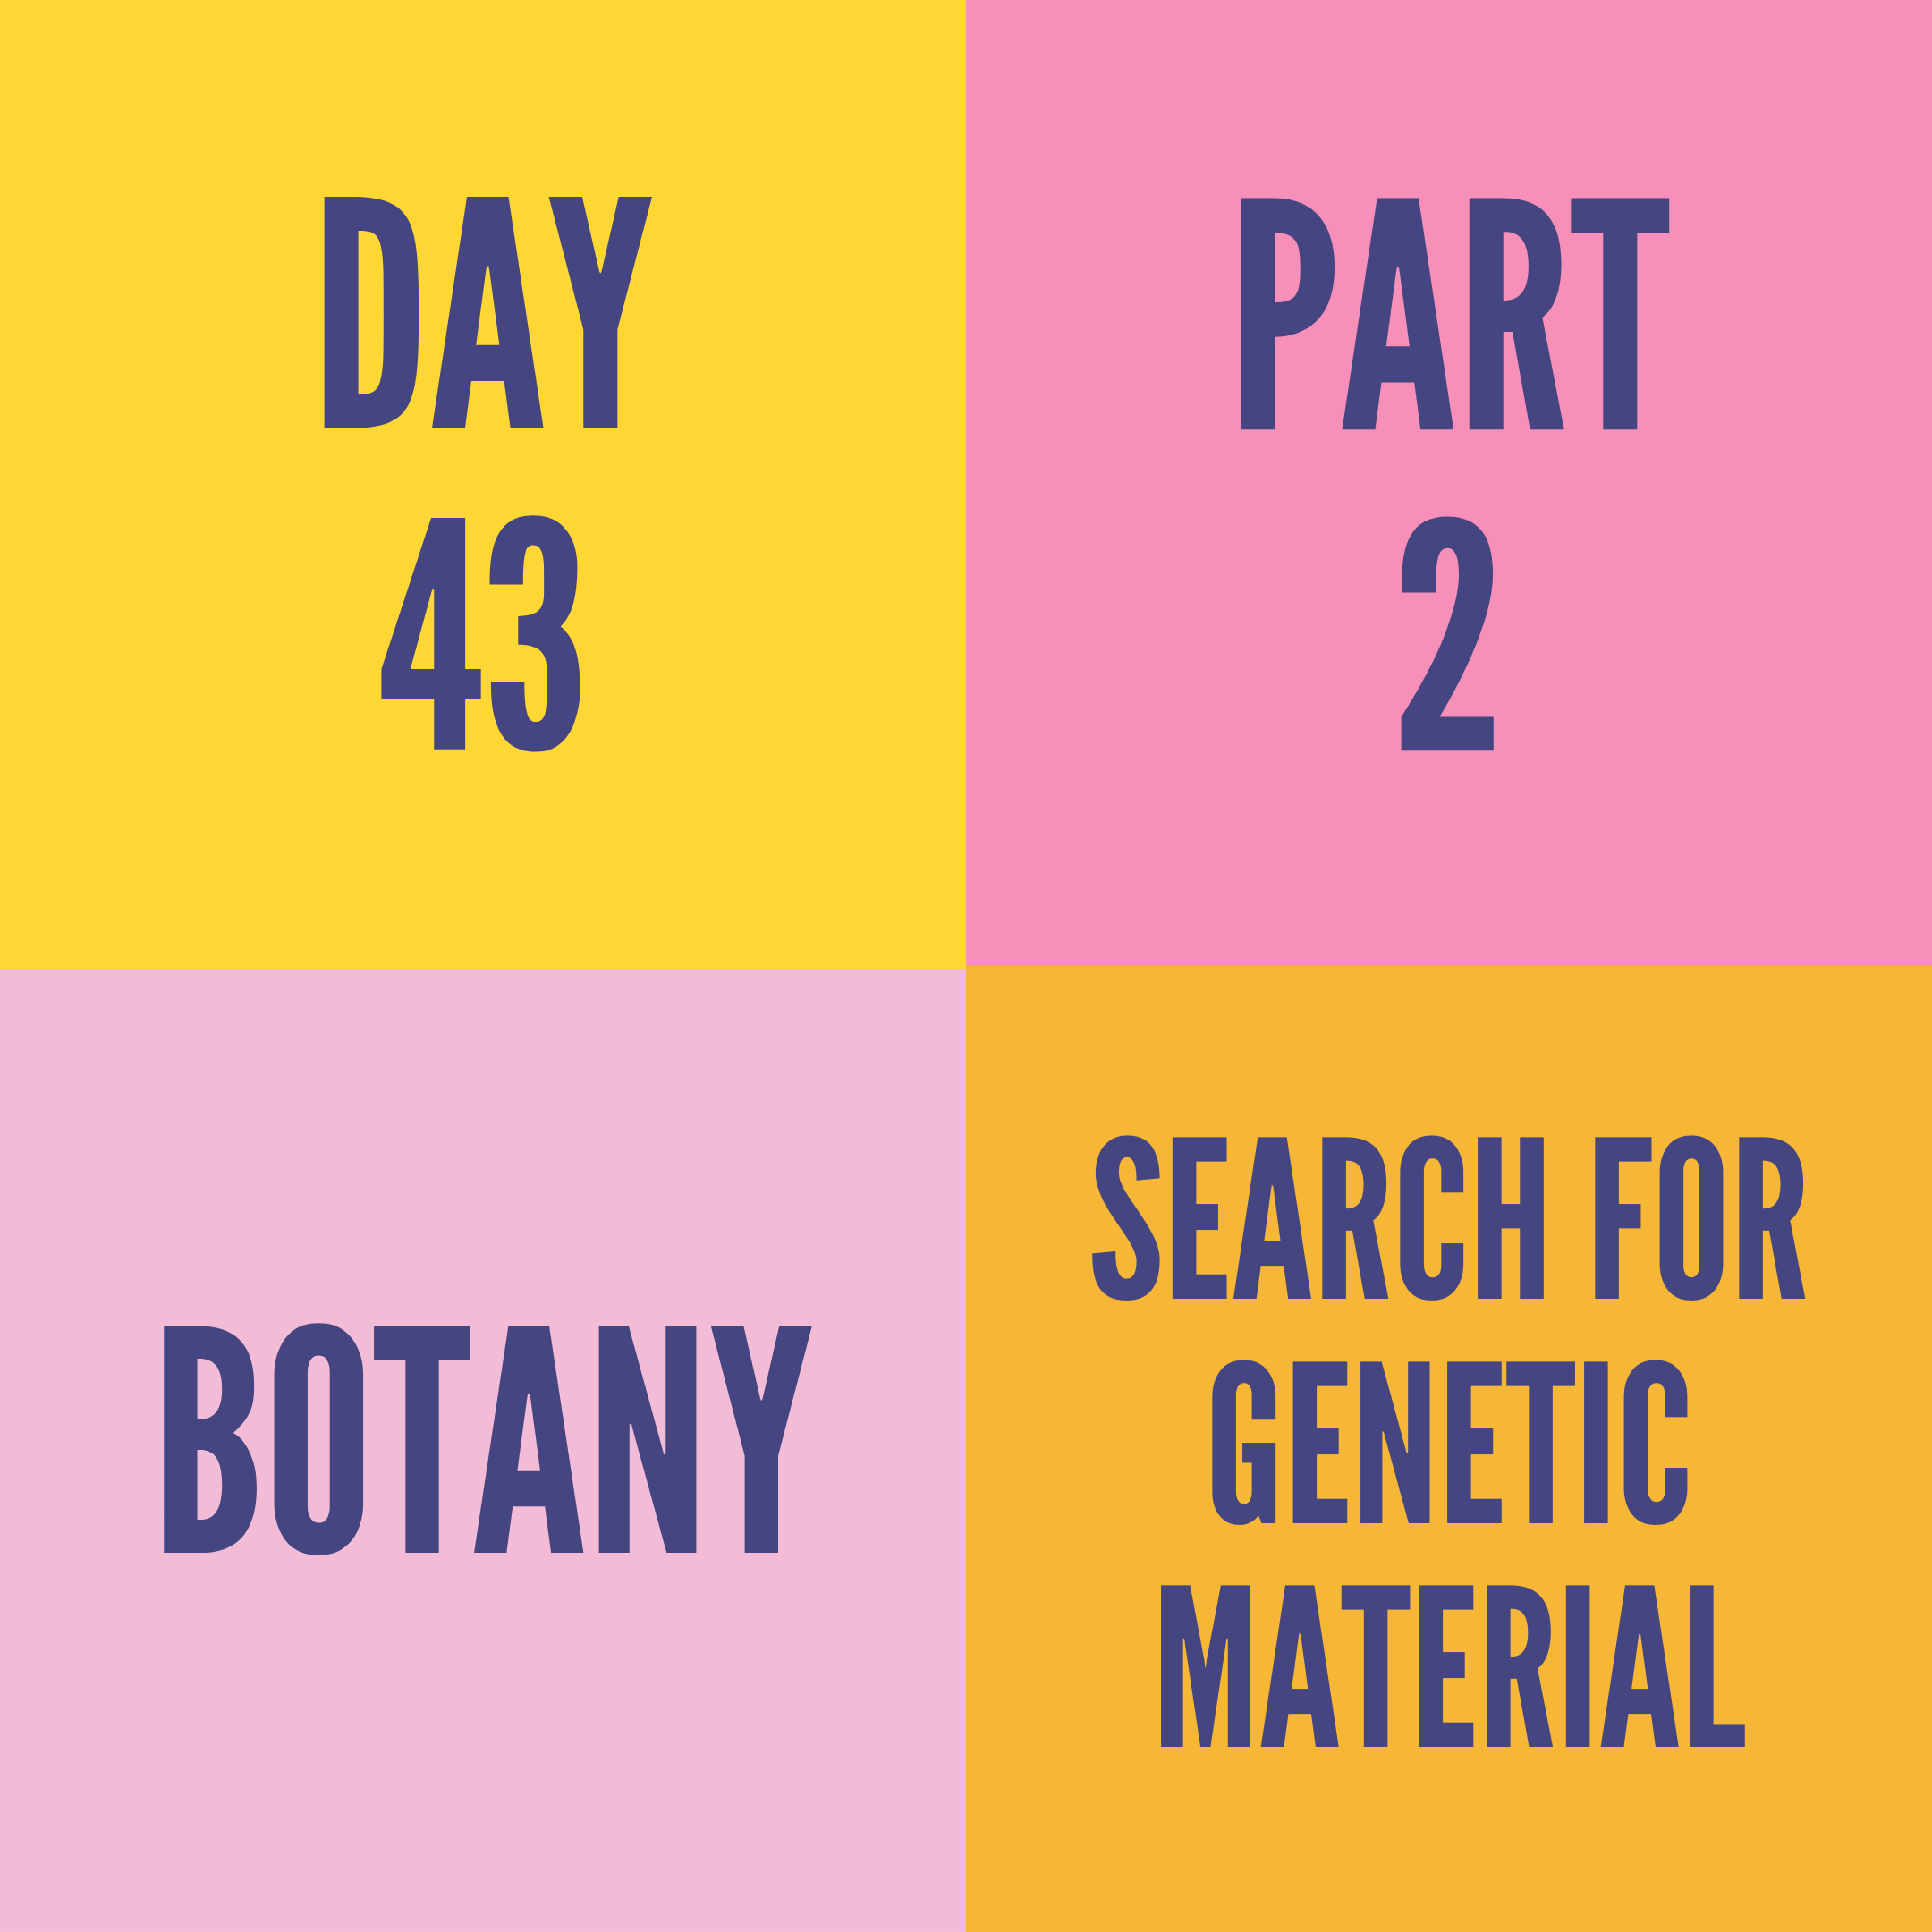 DAY-43 PART-2 SEARCH FOR GENETIC MATERIAL